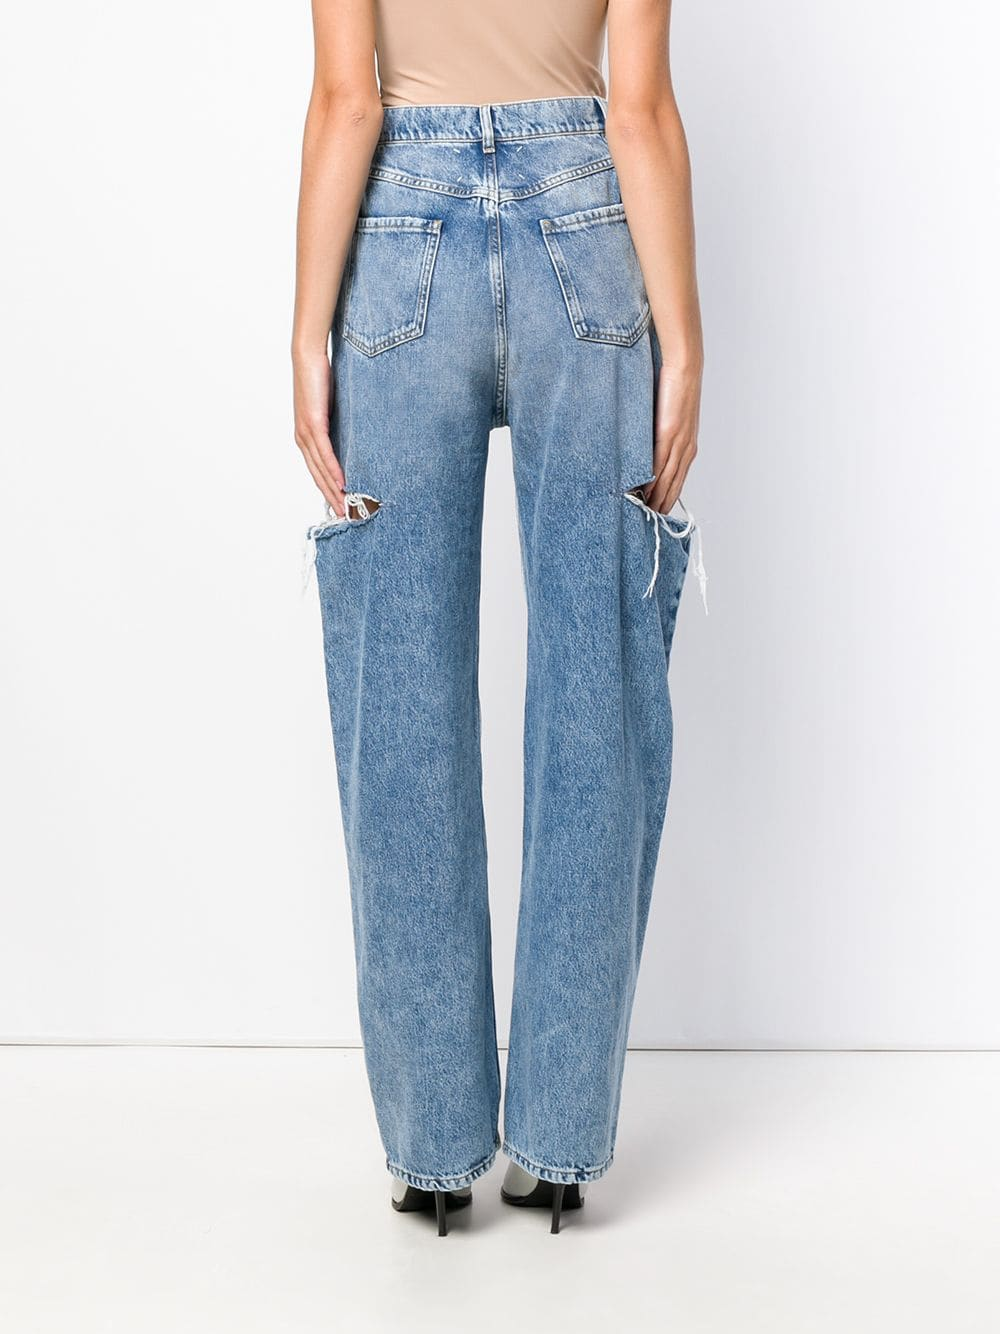 MAISON MARGIELA WOMEN 5 POCKETS CUT-OUT JEANS